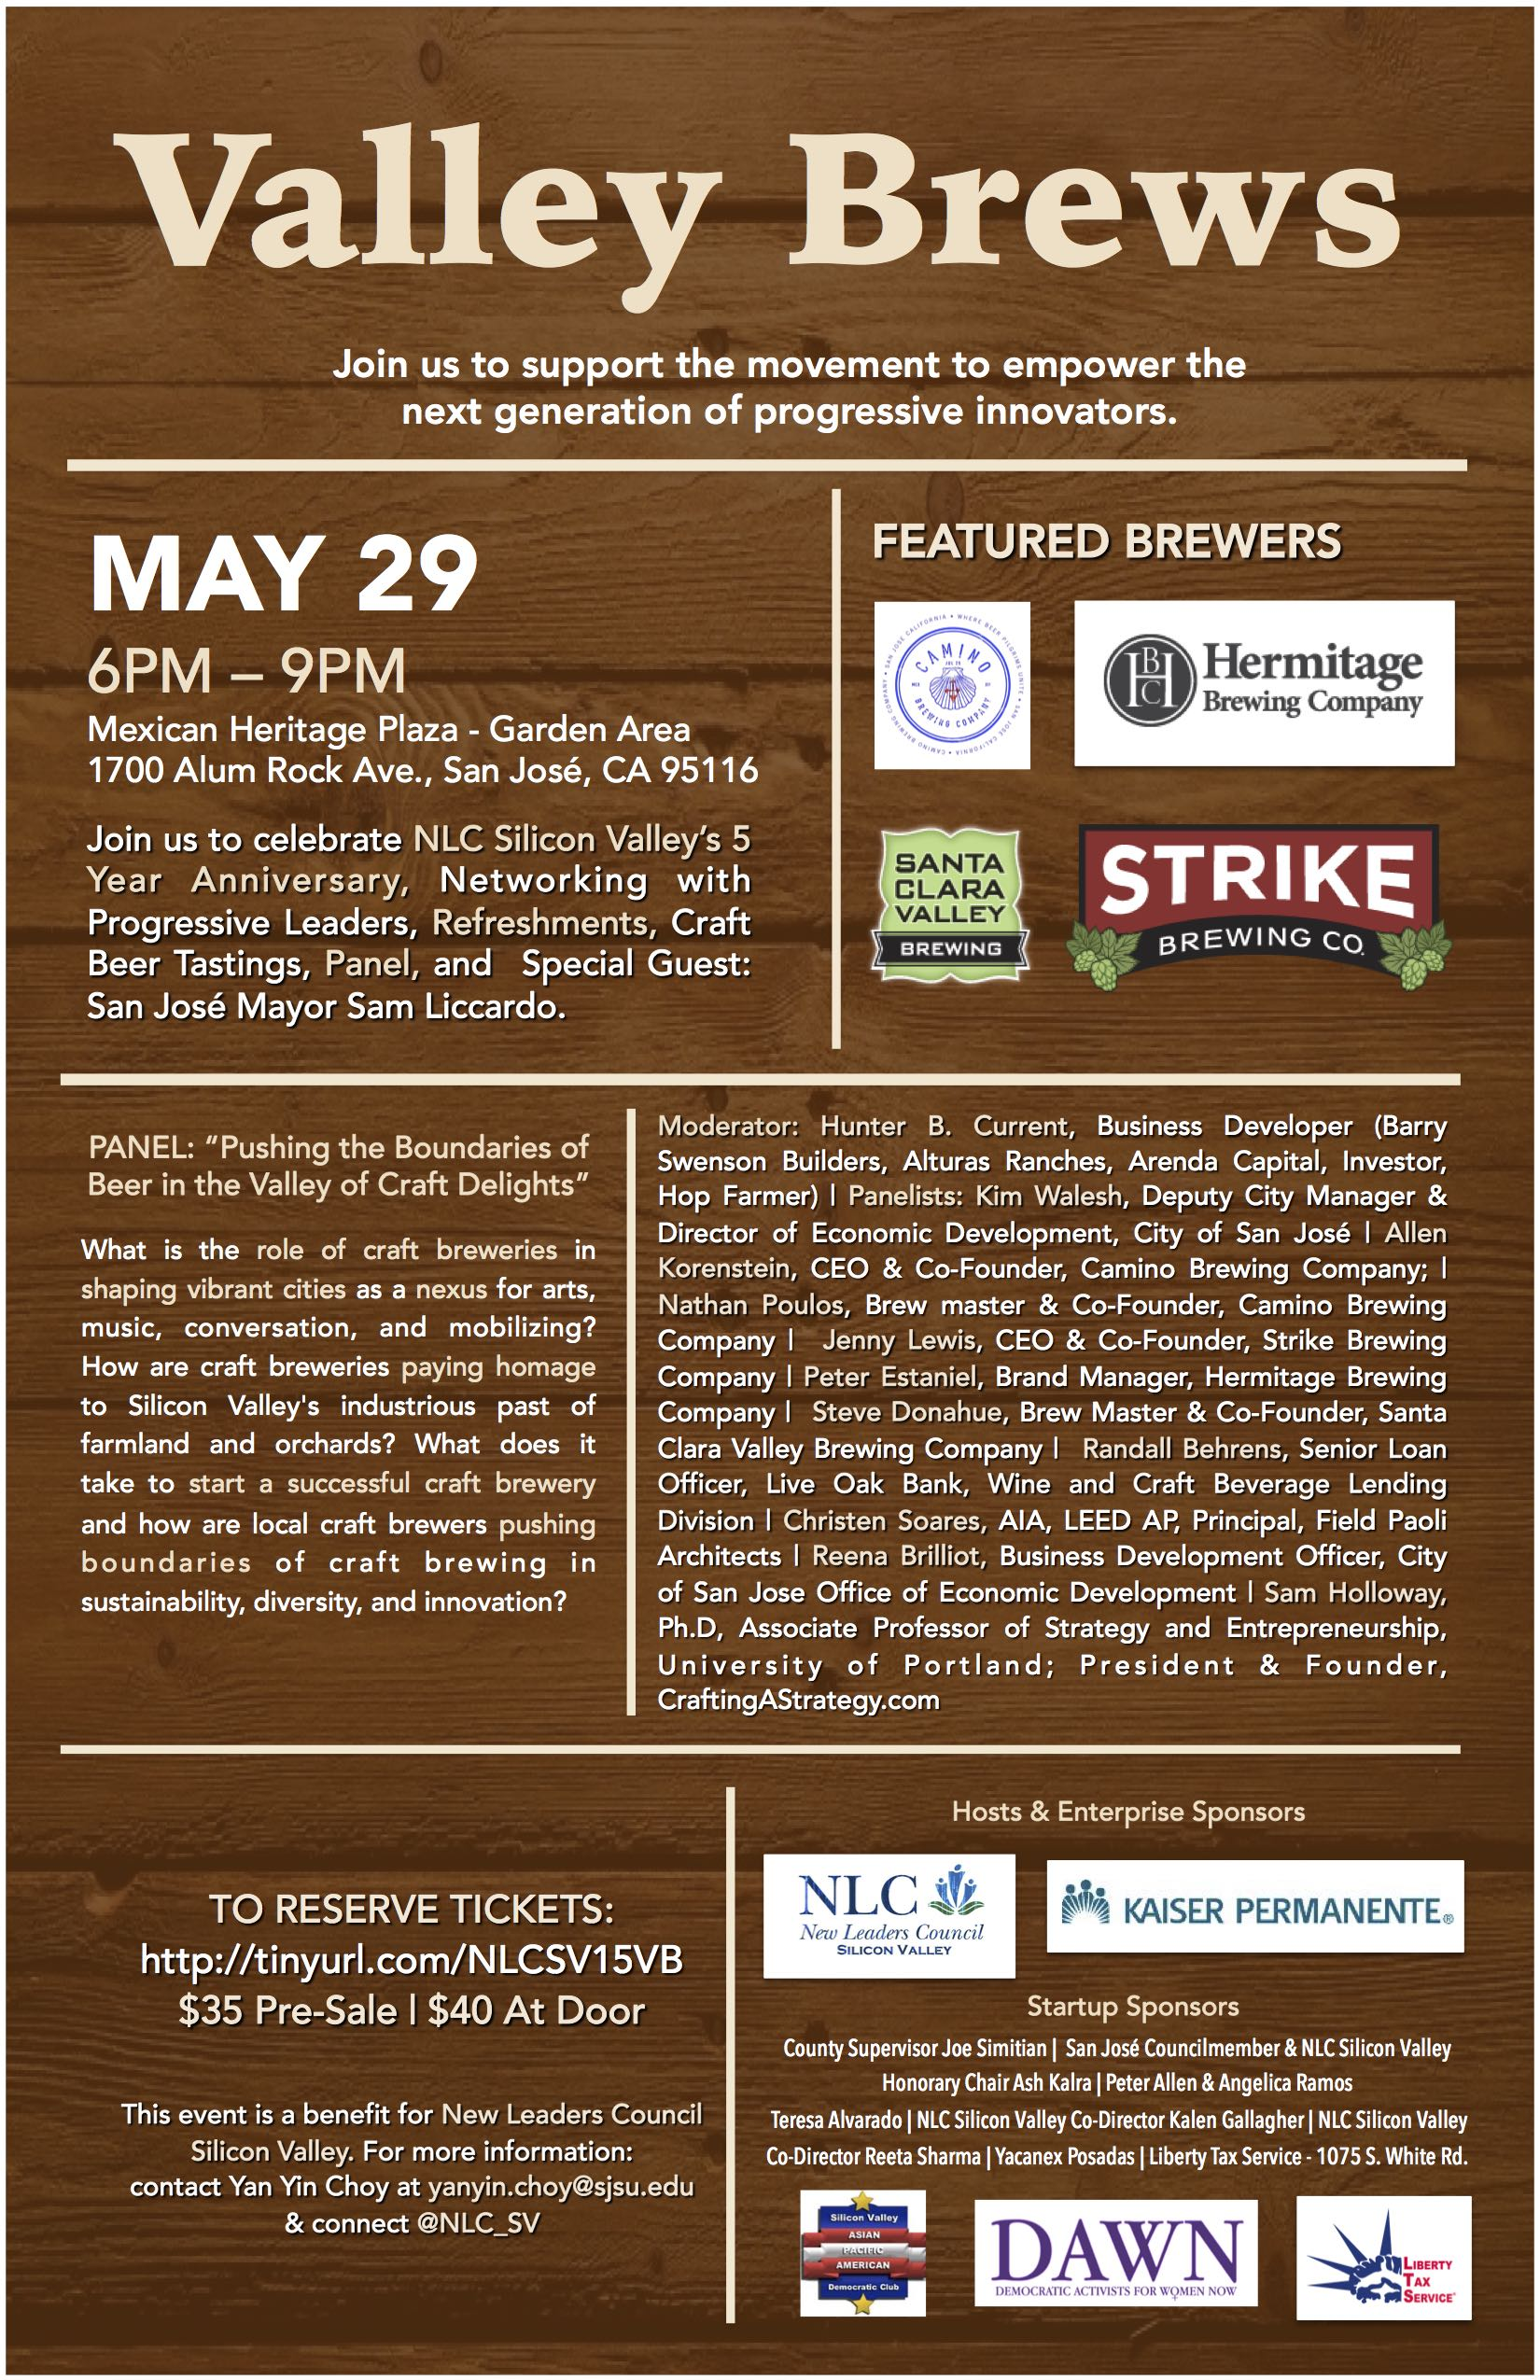 NLC_SV_2015_Fundraiser_-_Valley_Brews_-_May_29__2015_-_Flyer_-_Smaller.jpg